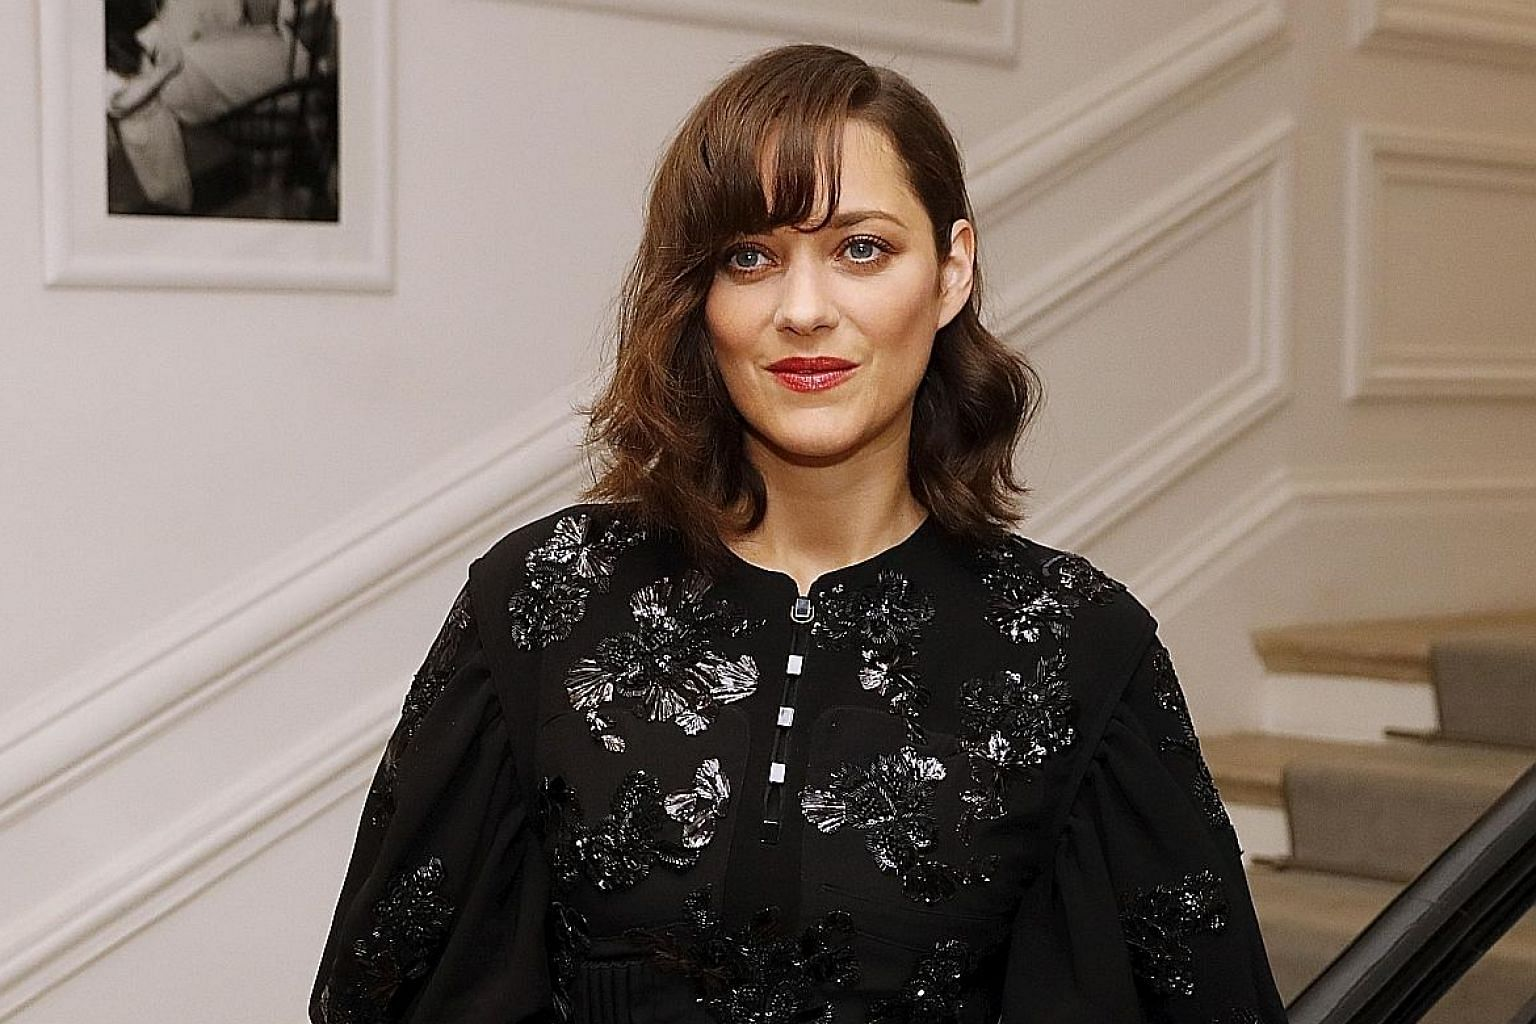 French actress Marion Cotillard, who stars in upcoming film Allied with Brad Pitt, says she is not involved in the split.